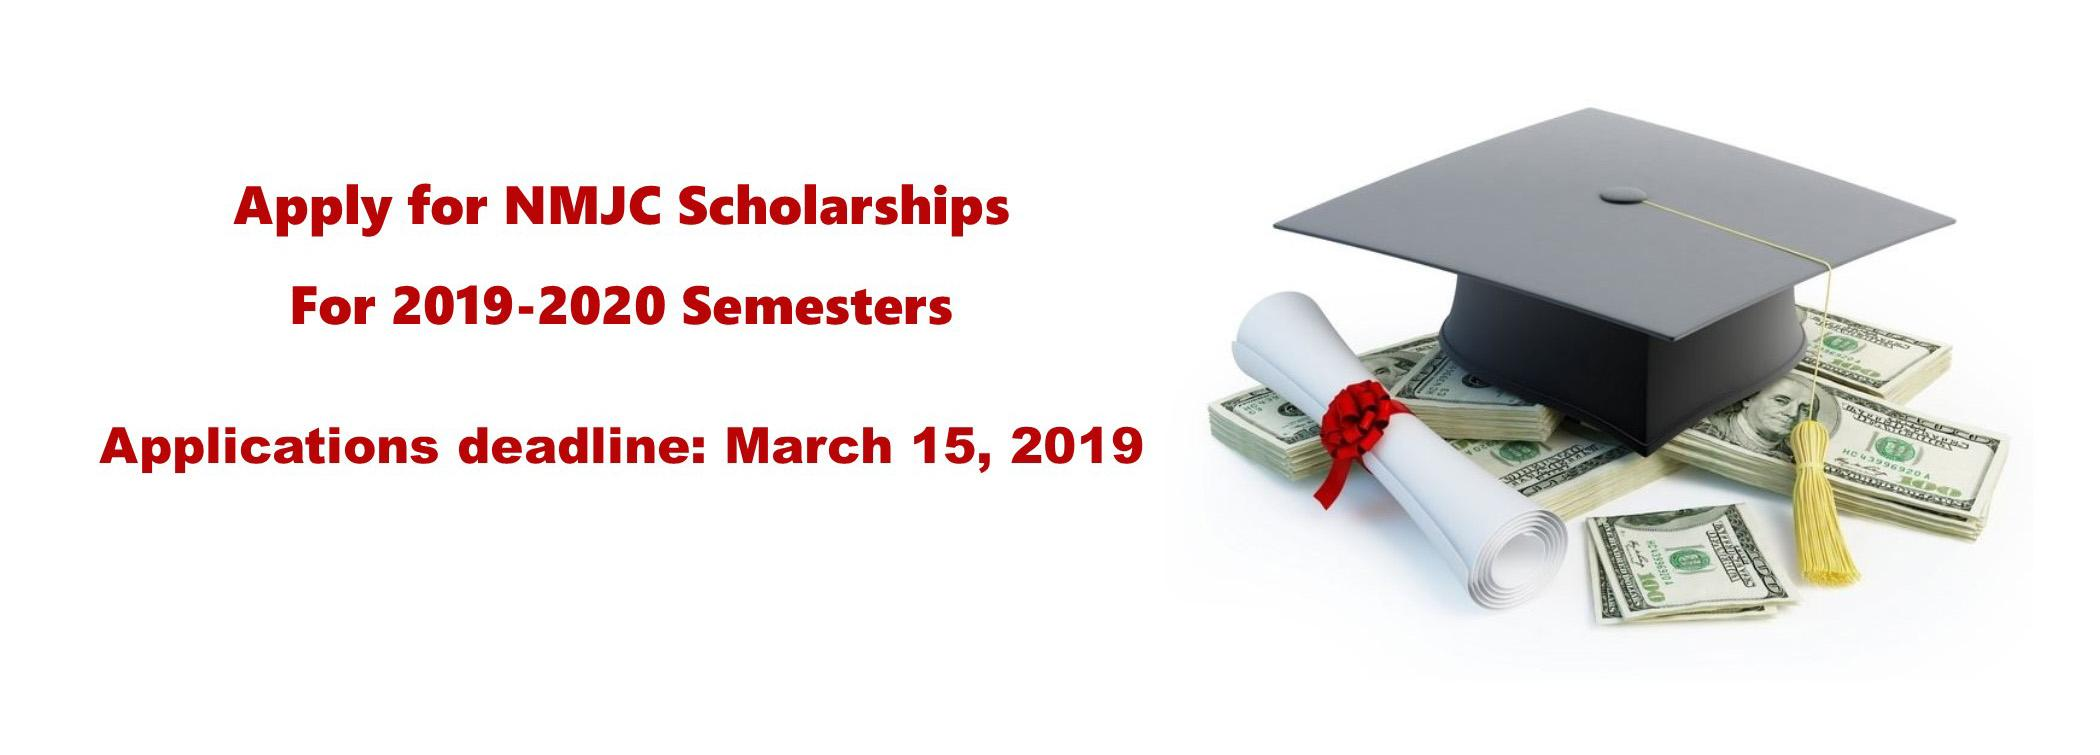 NMJC Scholarships are Available for 2019-2020